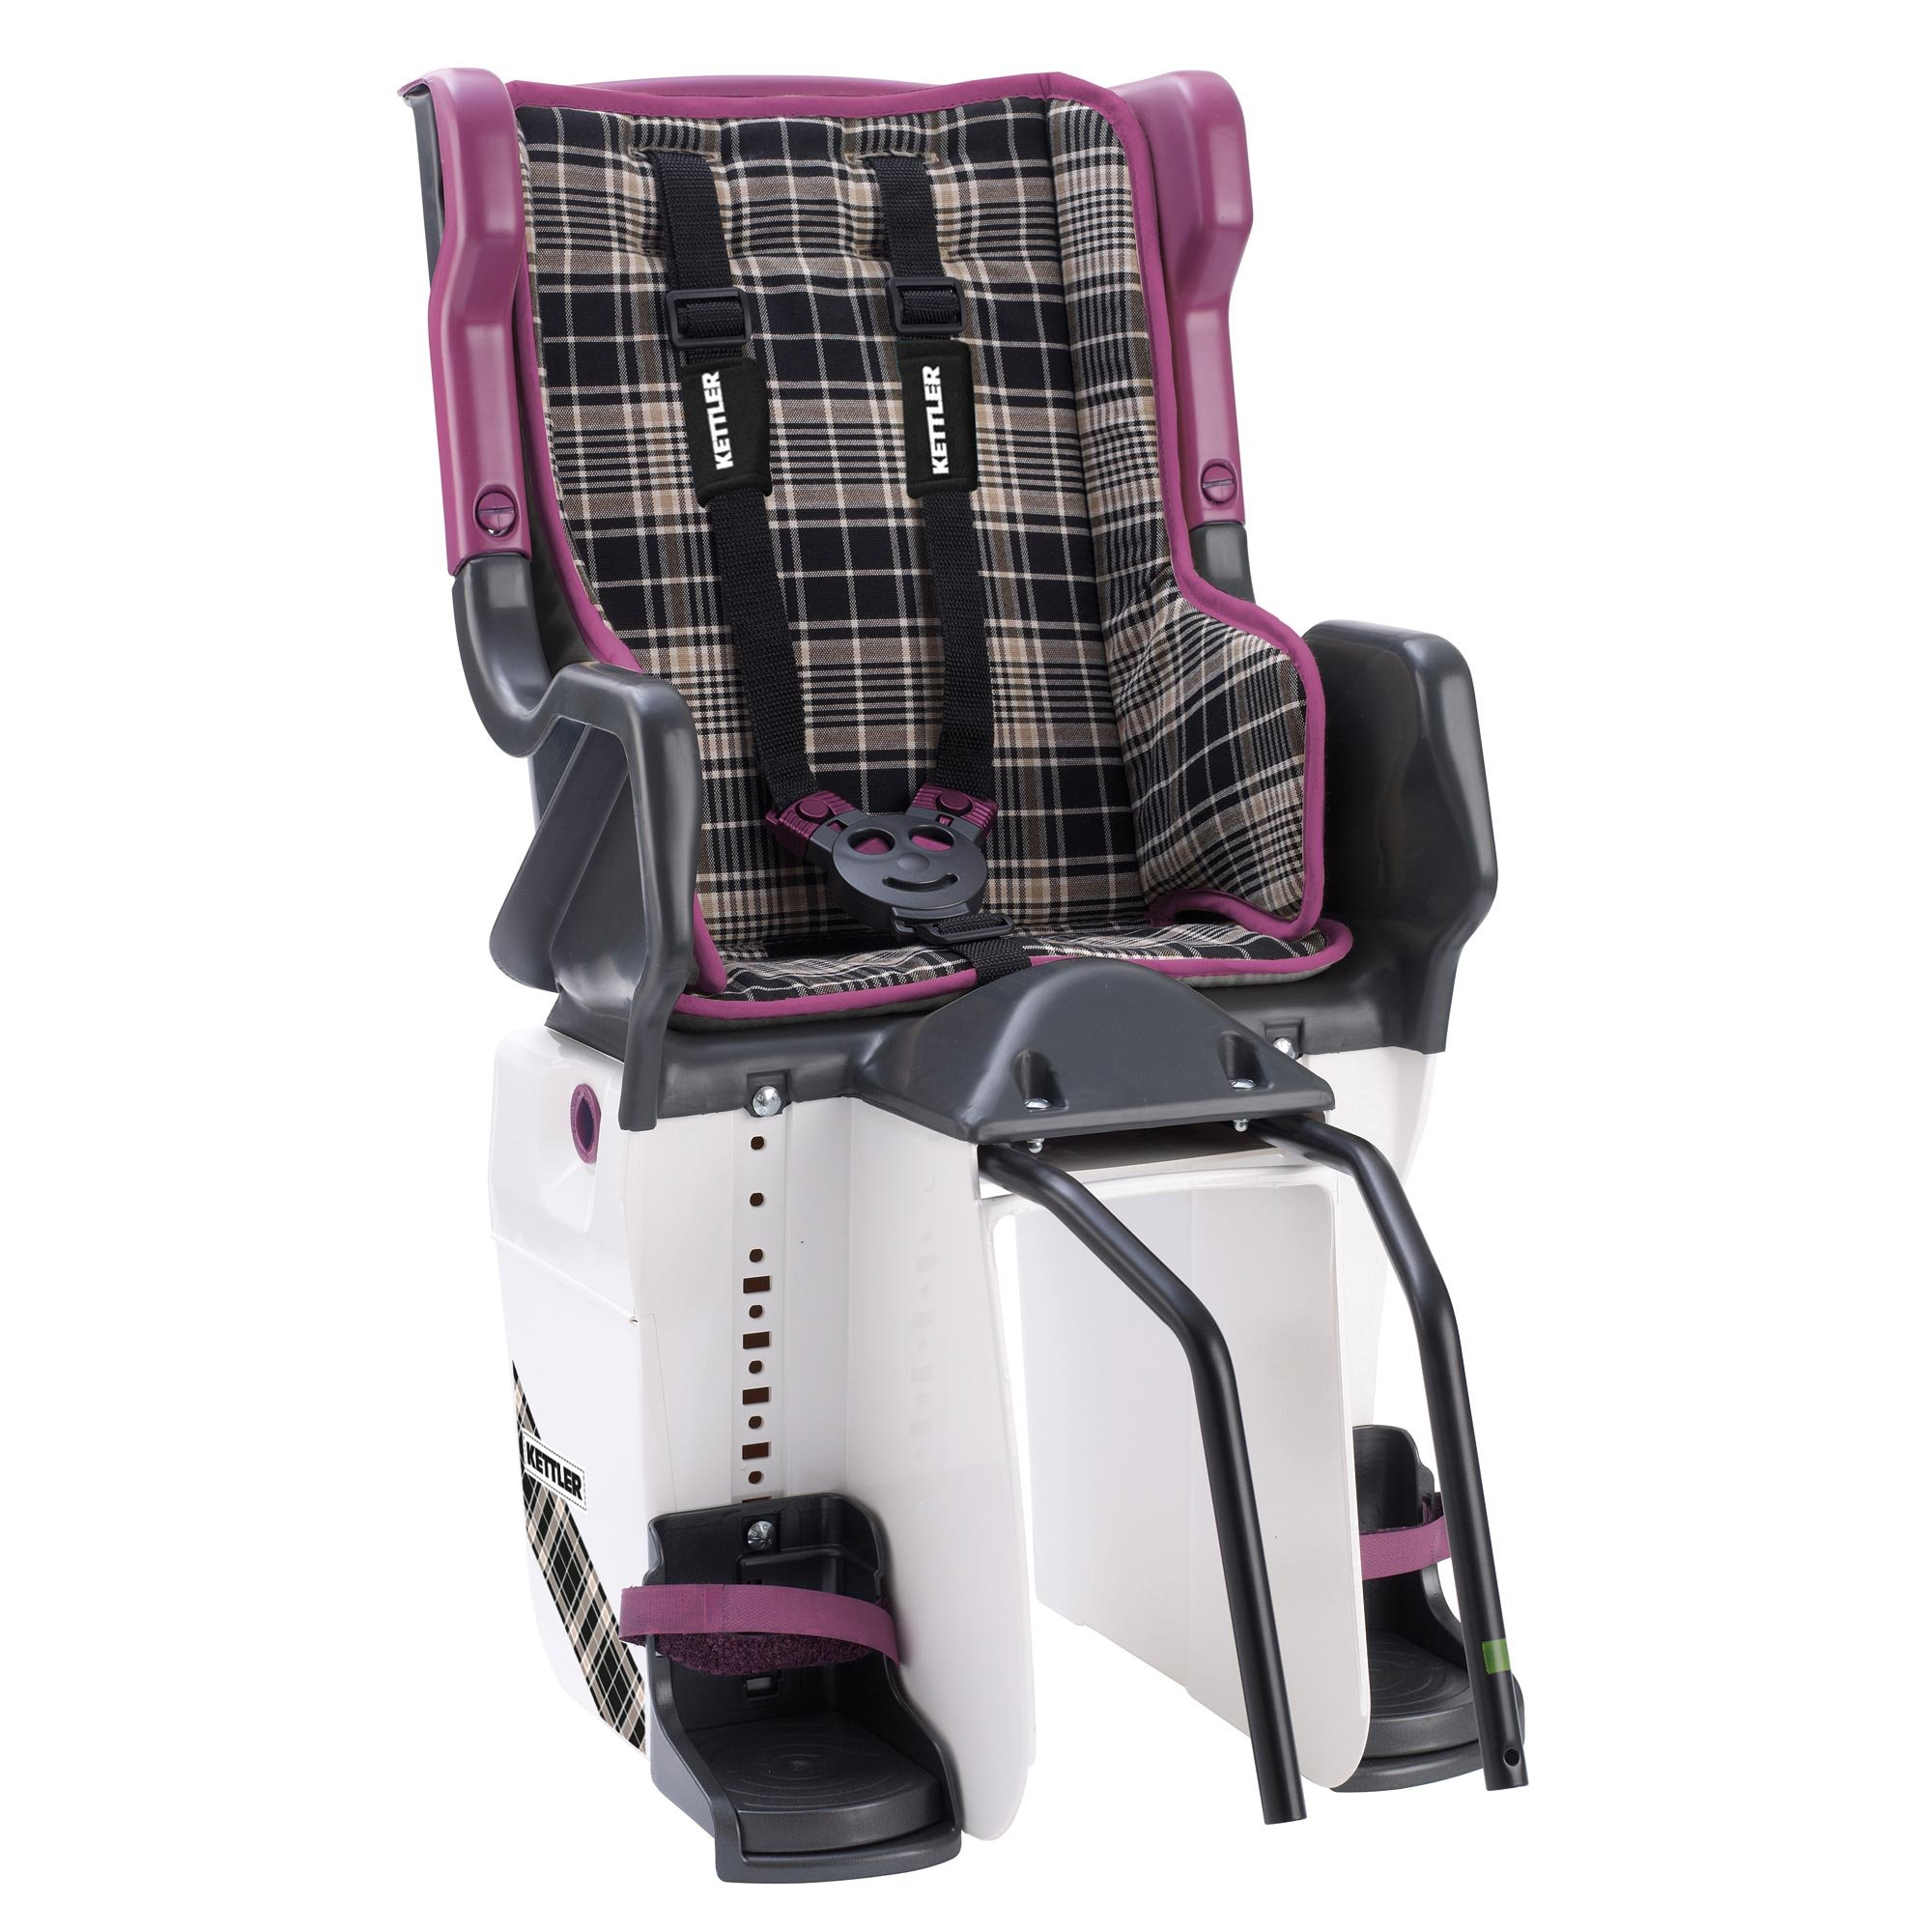 Kettler Kids Comfort Buy Kettler Teddy Child Bike Seat Purple In Cheap Price On